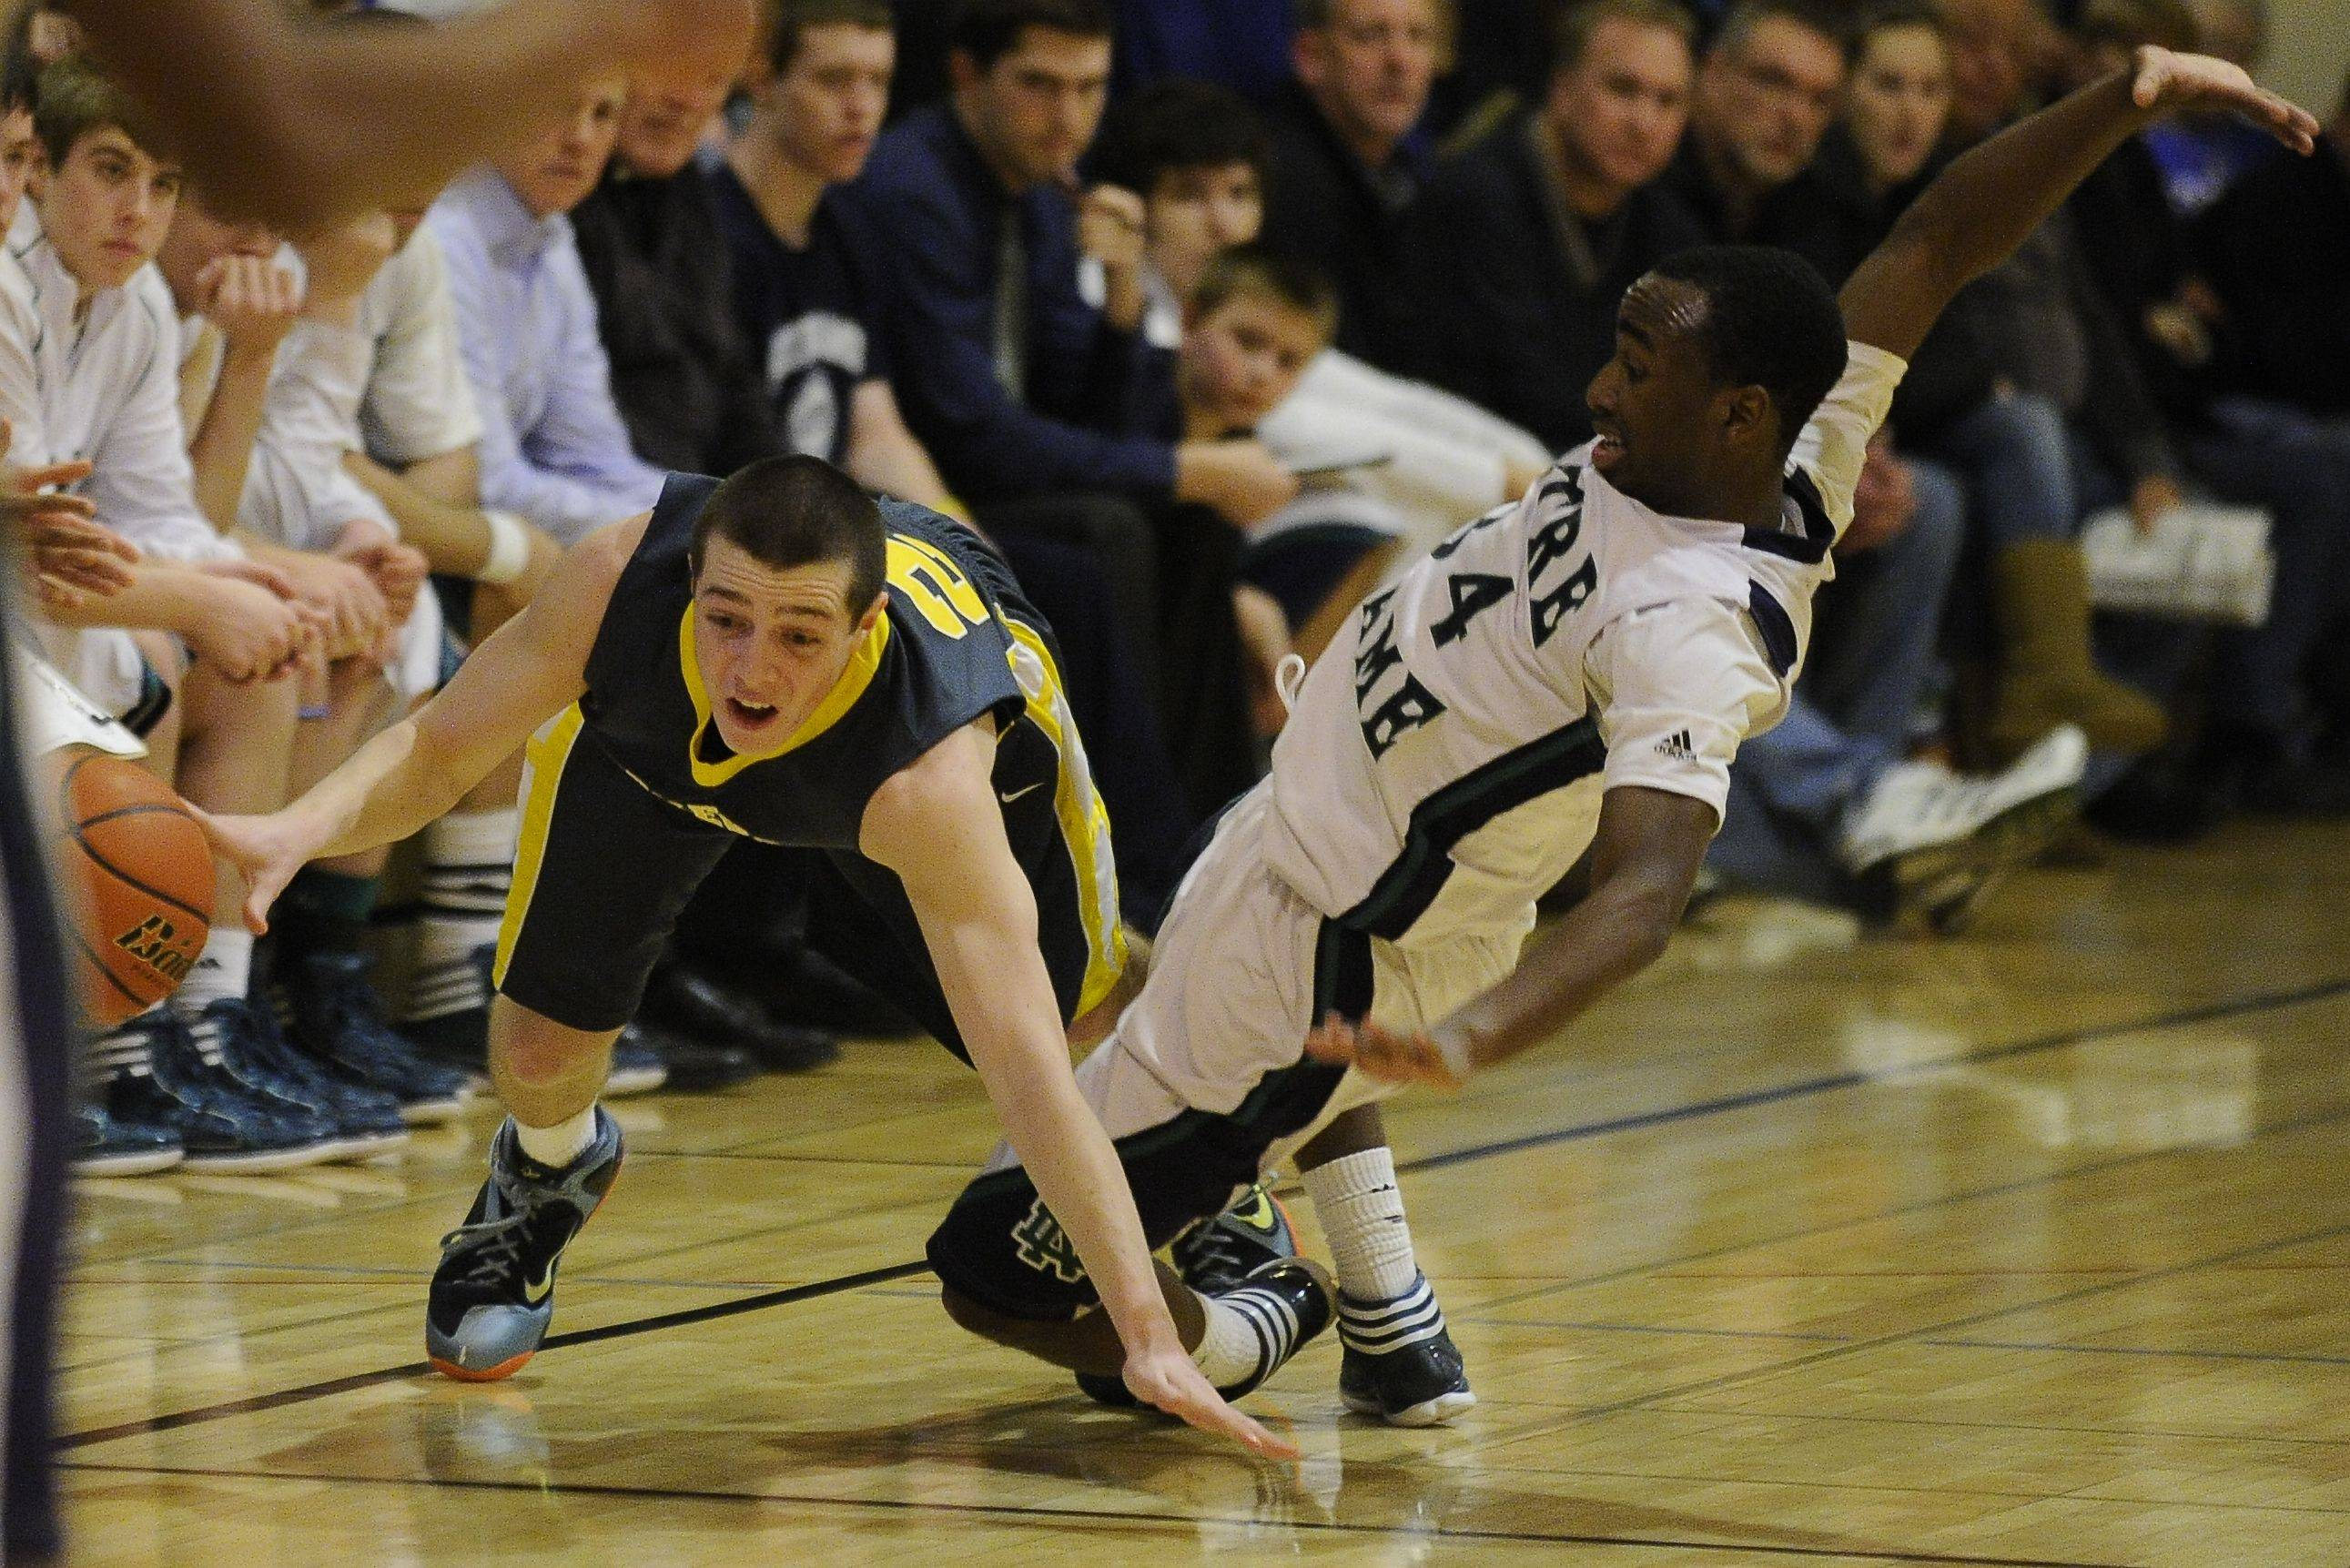 Images from the Notre Dame vs. Stevenson boys semifinal basketball game at the Wheeling holiday tournament on Thursday, December 29, 2011.